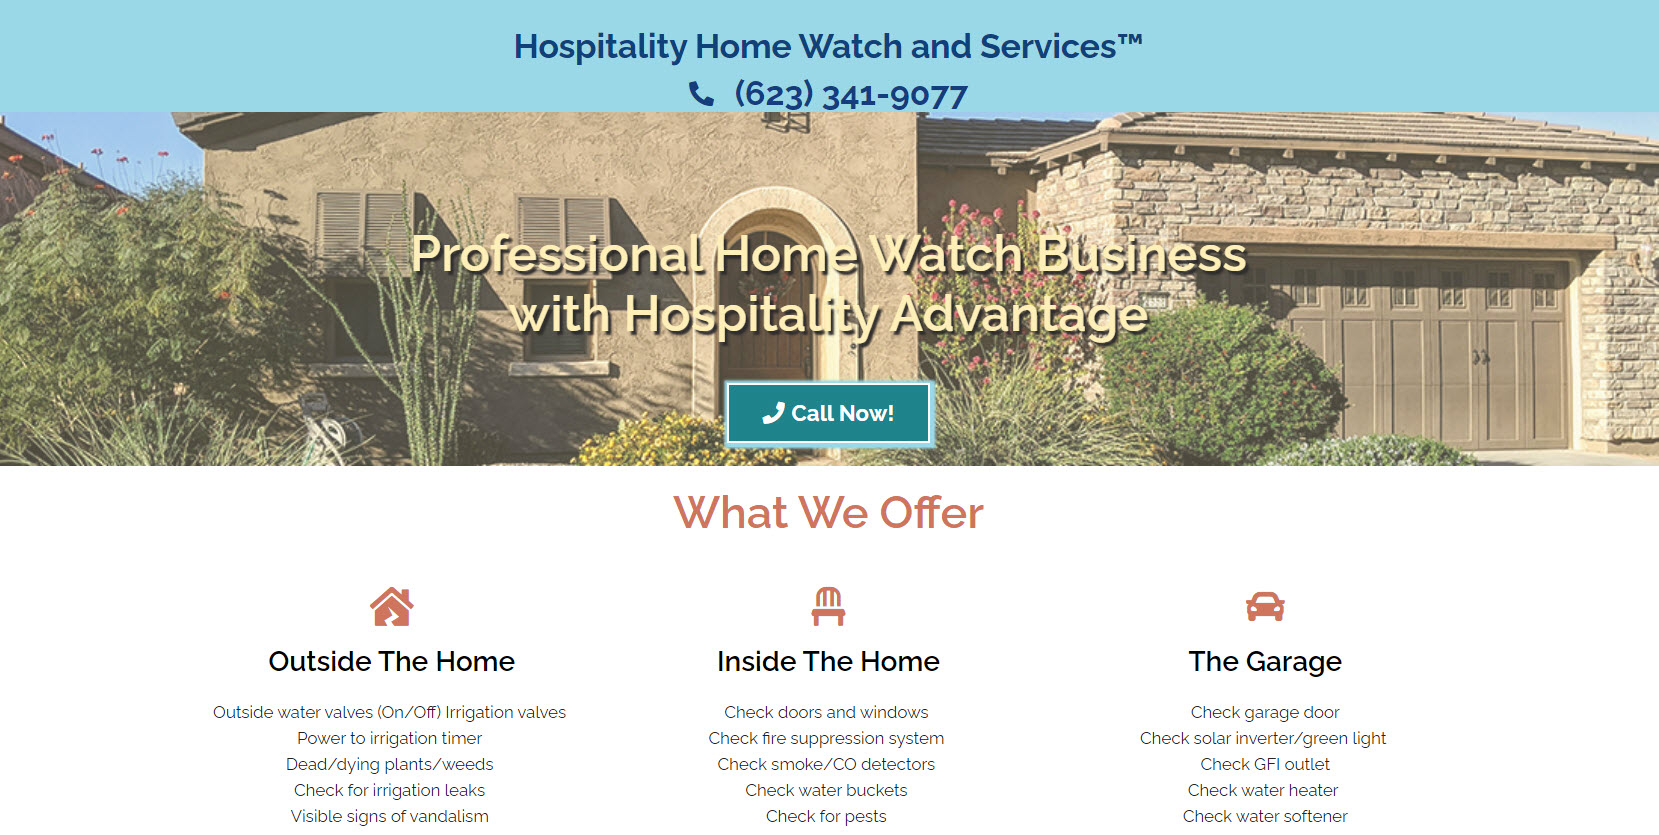 Hospitality Home Watch and Services Deborah Gardner